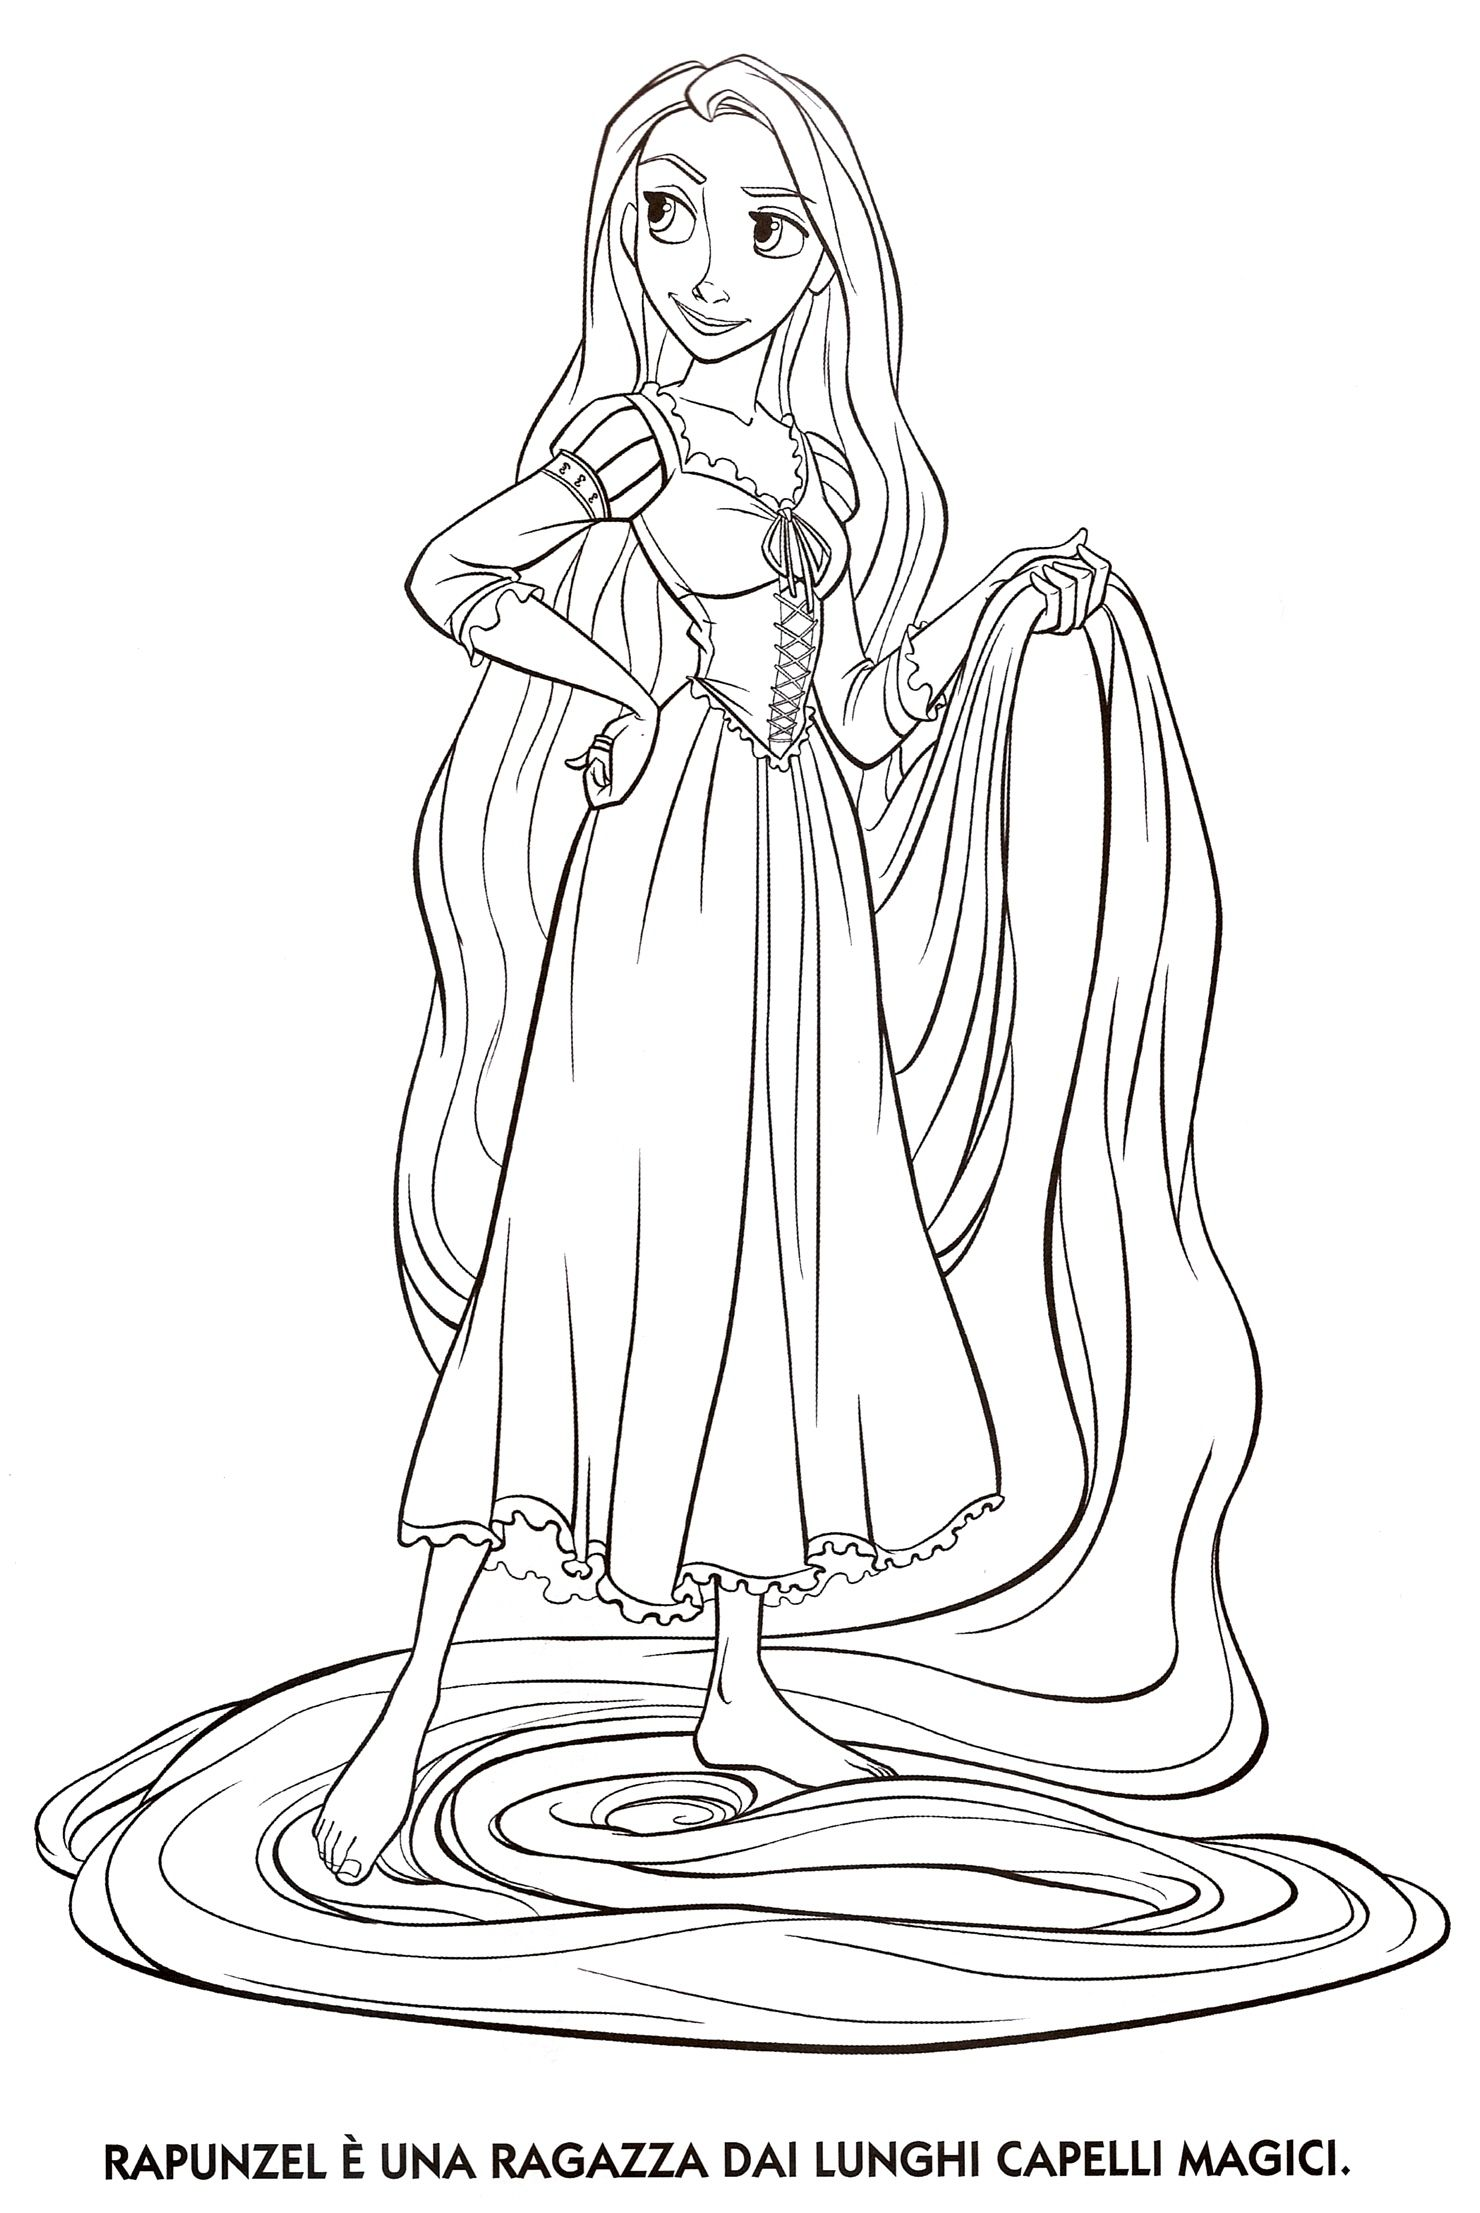 Colorare Rapunzel.Rapunzel Coloring Page Easy For Kids Coloring Pages Pagine Da